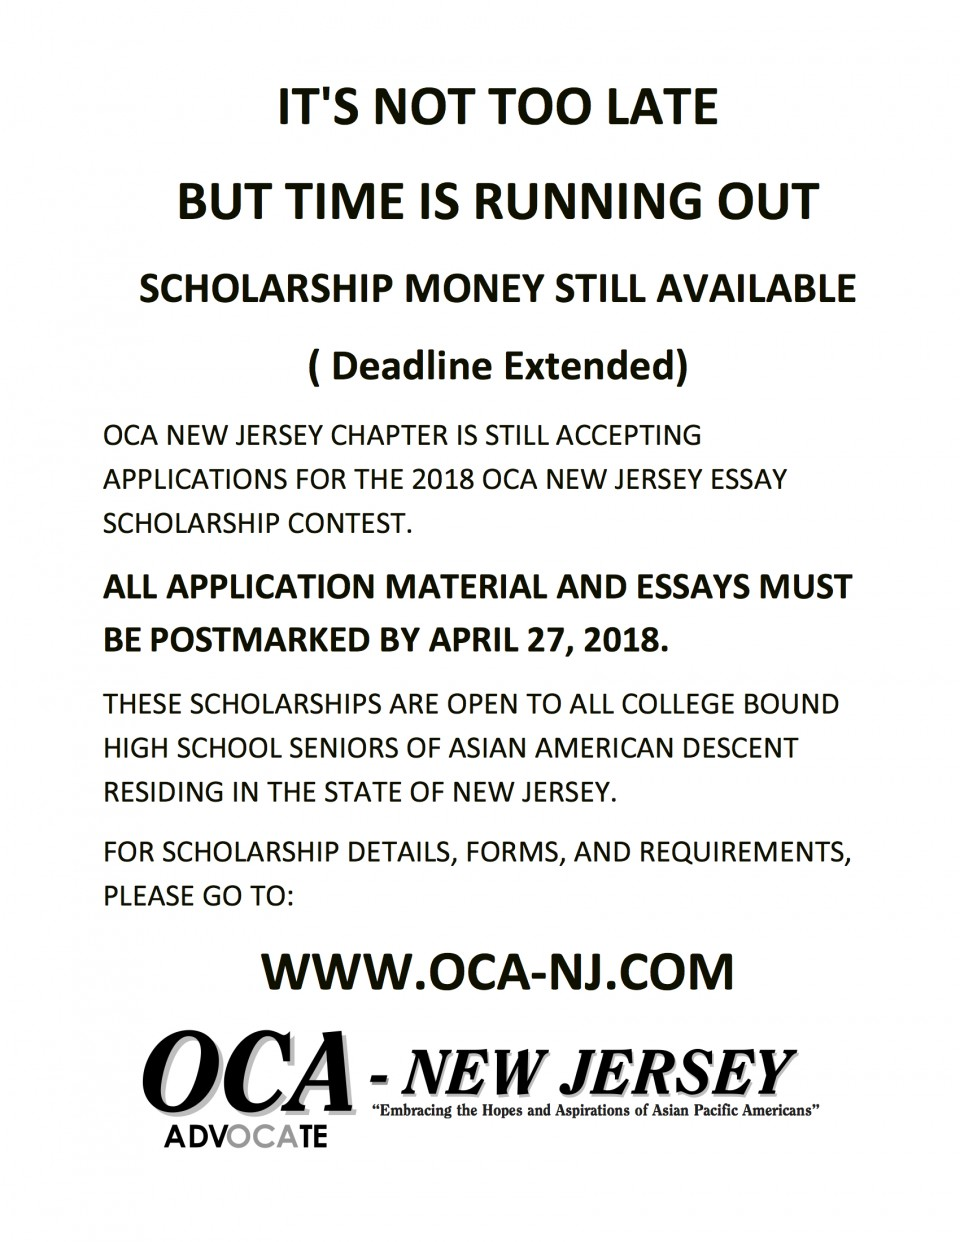 014 Essay Example Scholarships Entended Deadline Oca Nj Shocking For High School Students 2018 2019 960